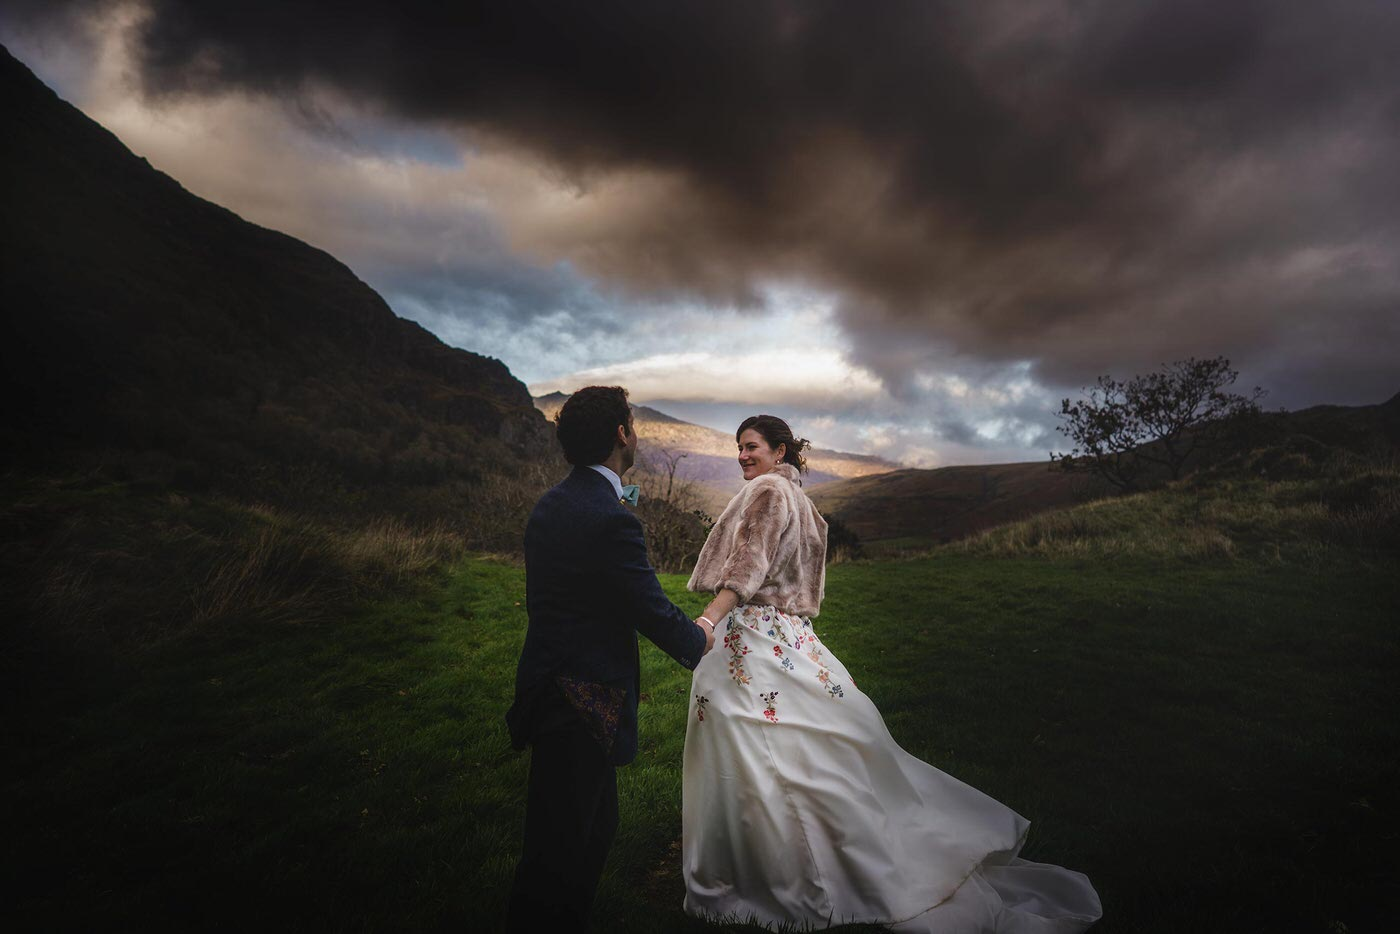 shropshire wedding and portrait photographer captures image of couple in North Wales Wedding